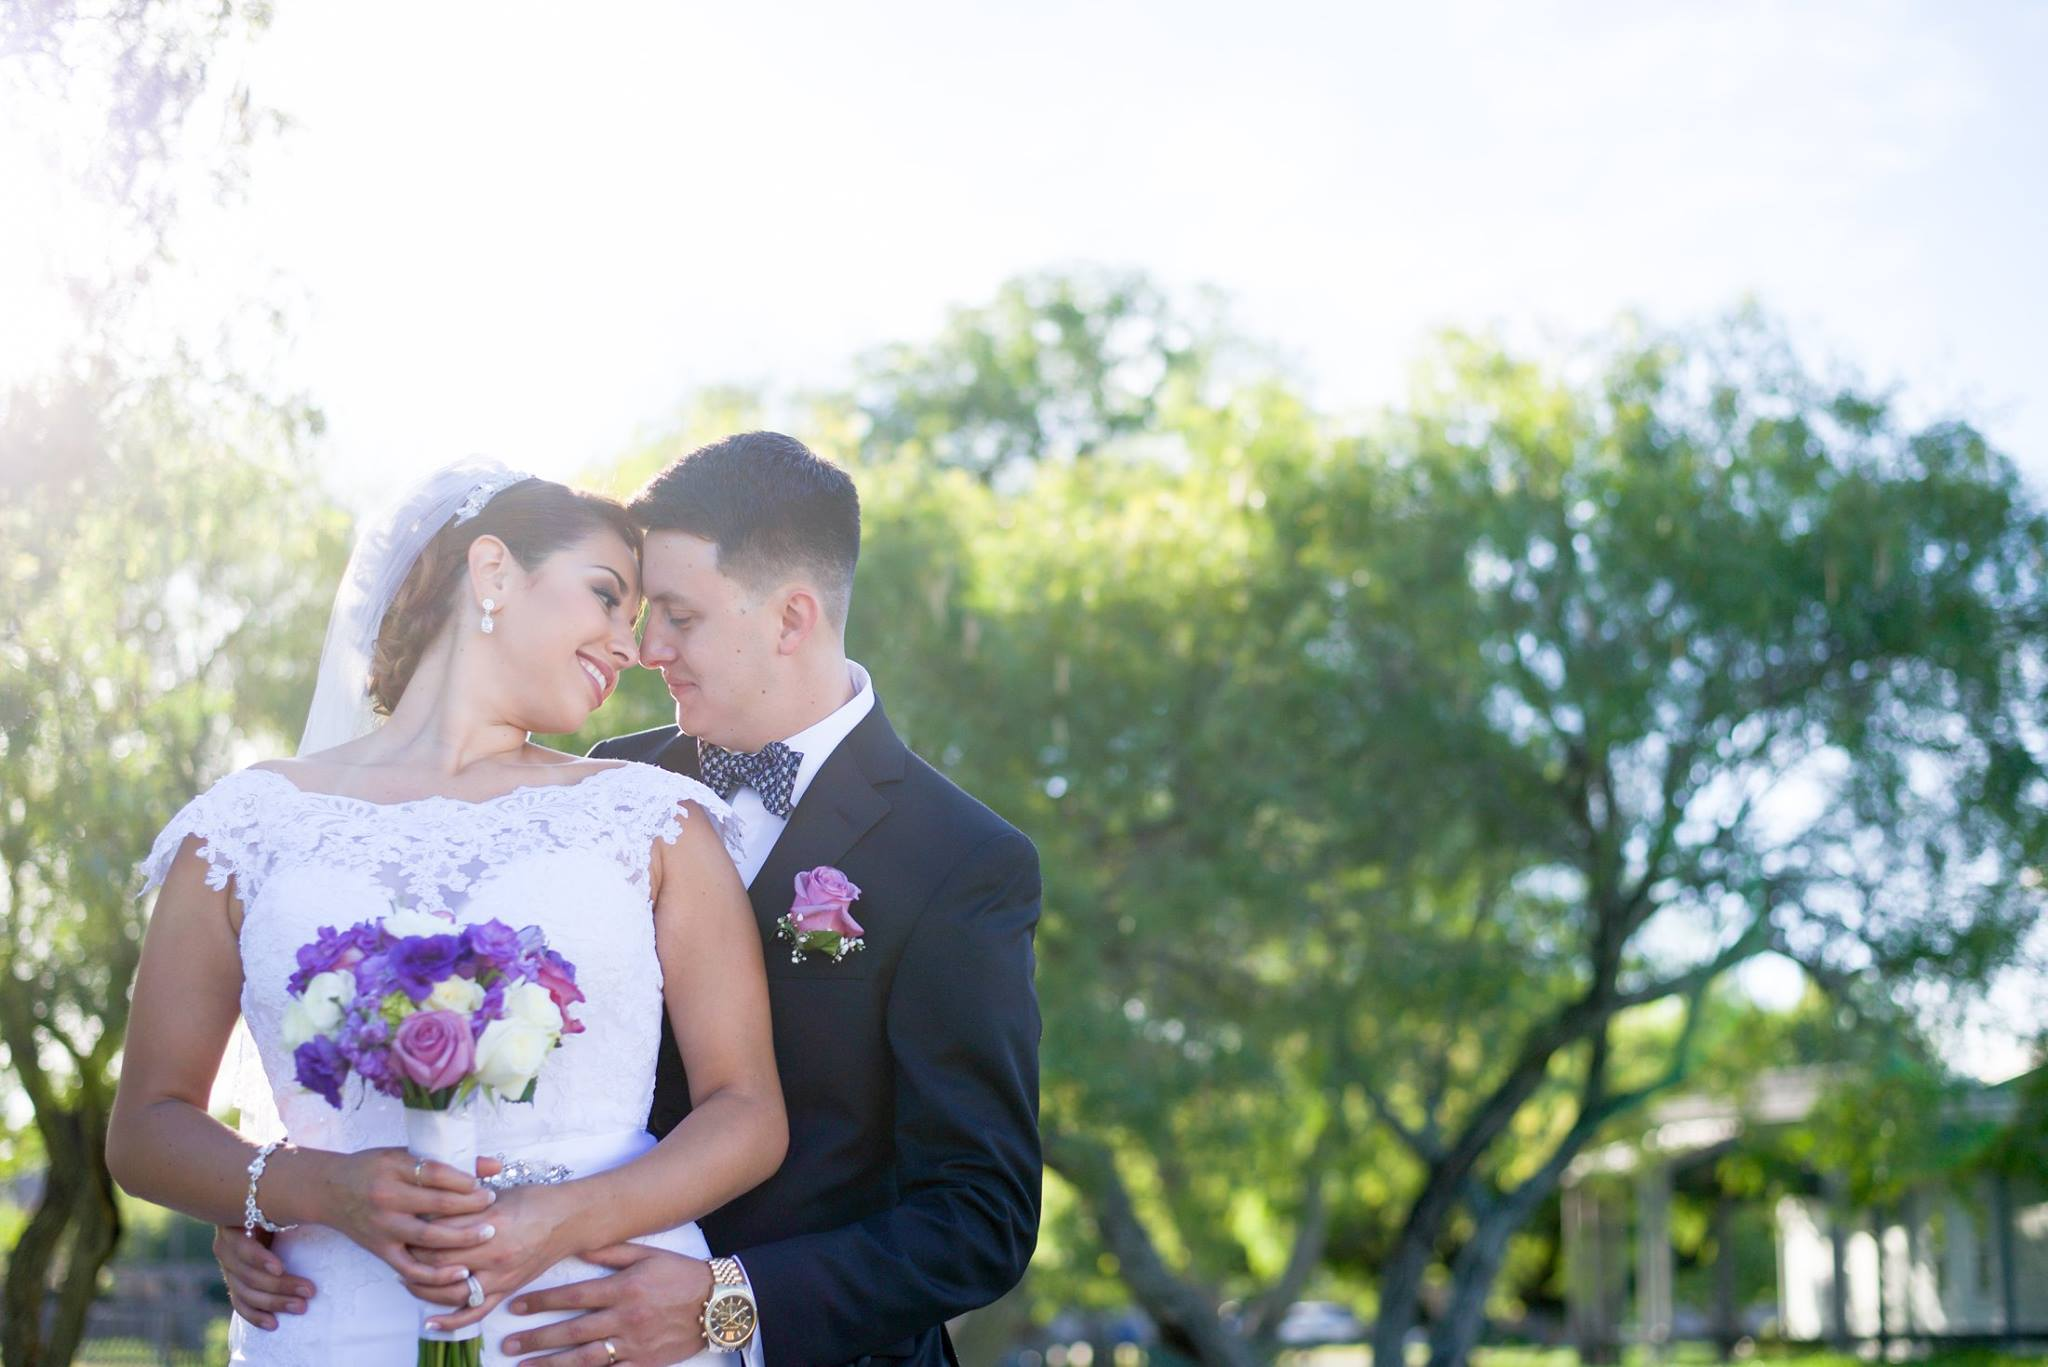 October 2015, my first wedding after three years of practice. More confidence, more skill.